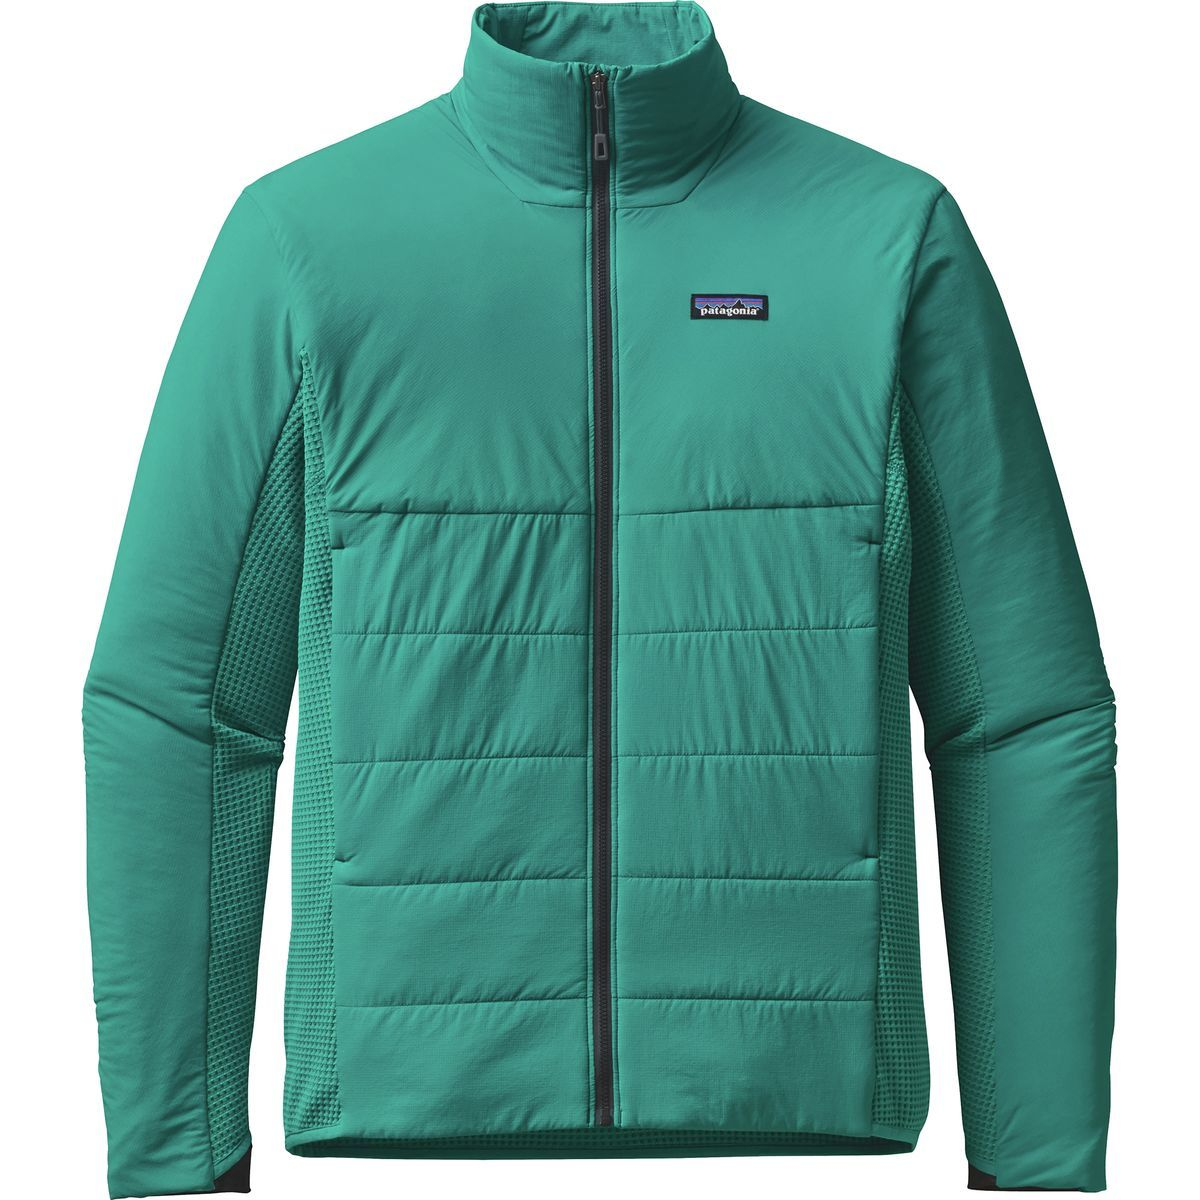 Patagonia NanoAir Light Hybrid Jacket Jackets